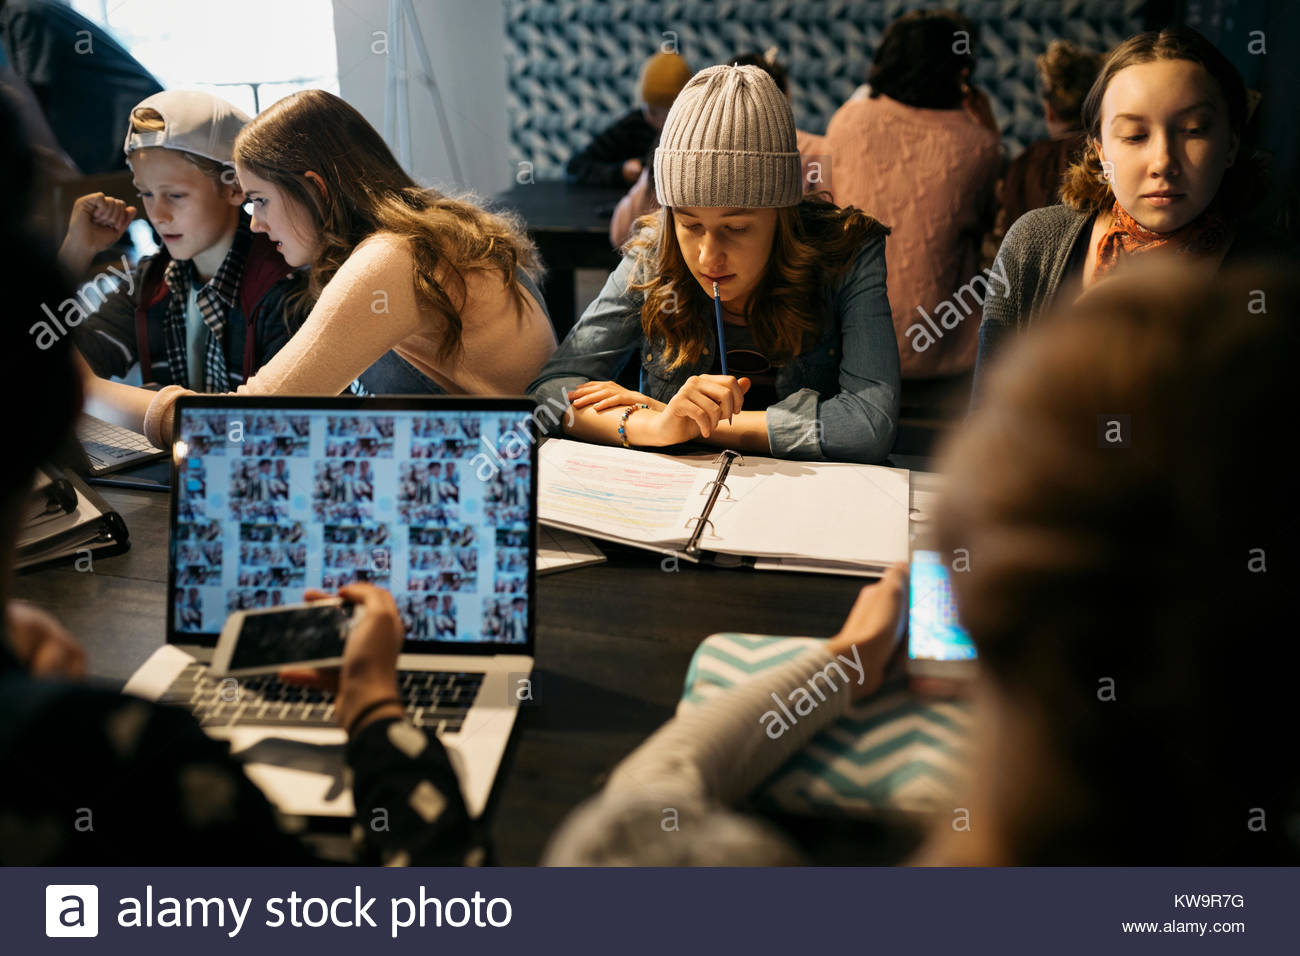 Focused high school girl student studying notes in cafe - Stock Image